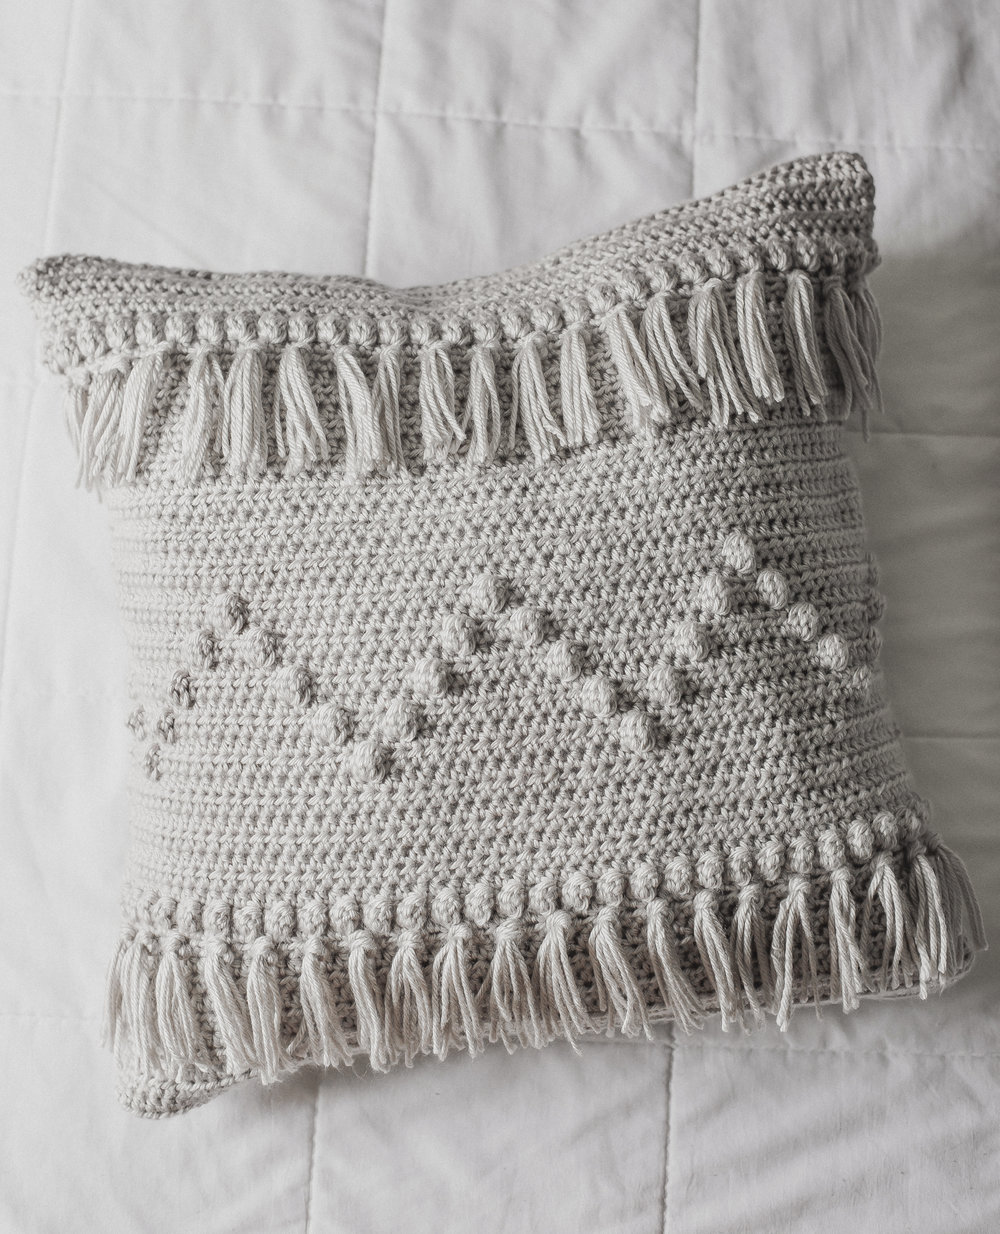 Free+Crochet+Pattern+for+Fringe+Crochet+Pillow+ +Megmade+with+Love?format=1000w